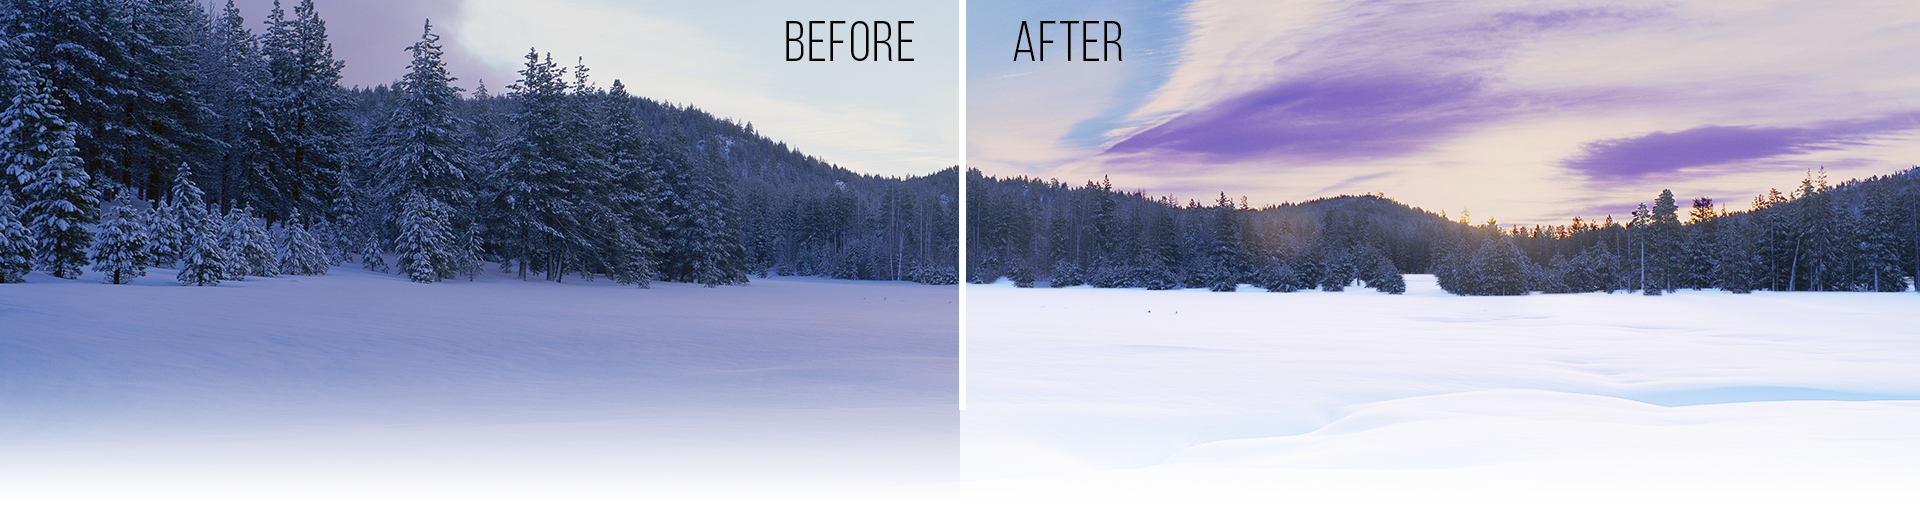 Photography Tips for Perfect Snowy Photos: Don't be afraid of light